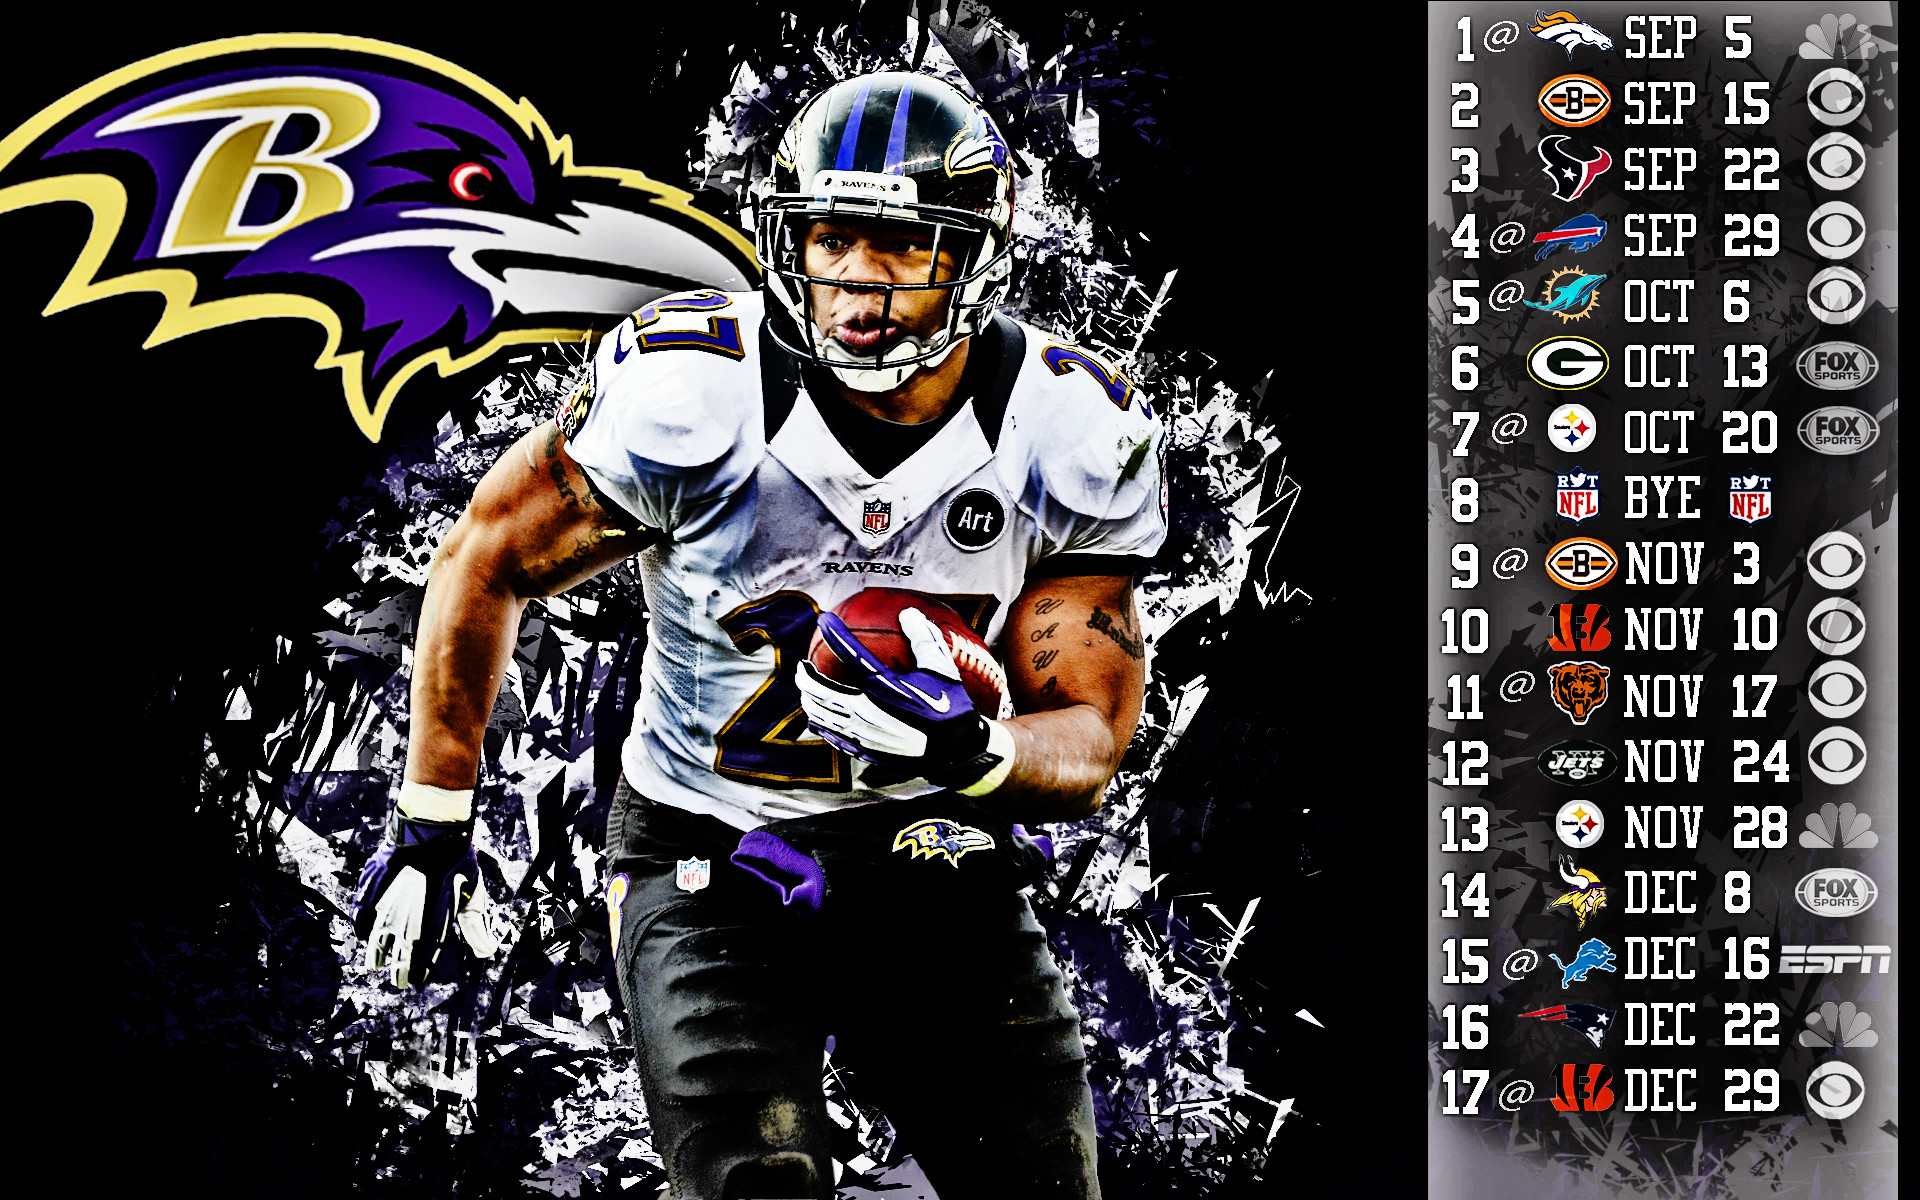 Cool NFL Wallpapers (74+ Images